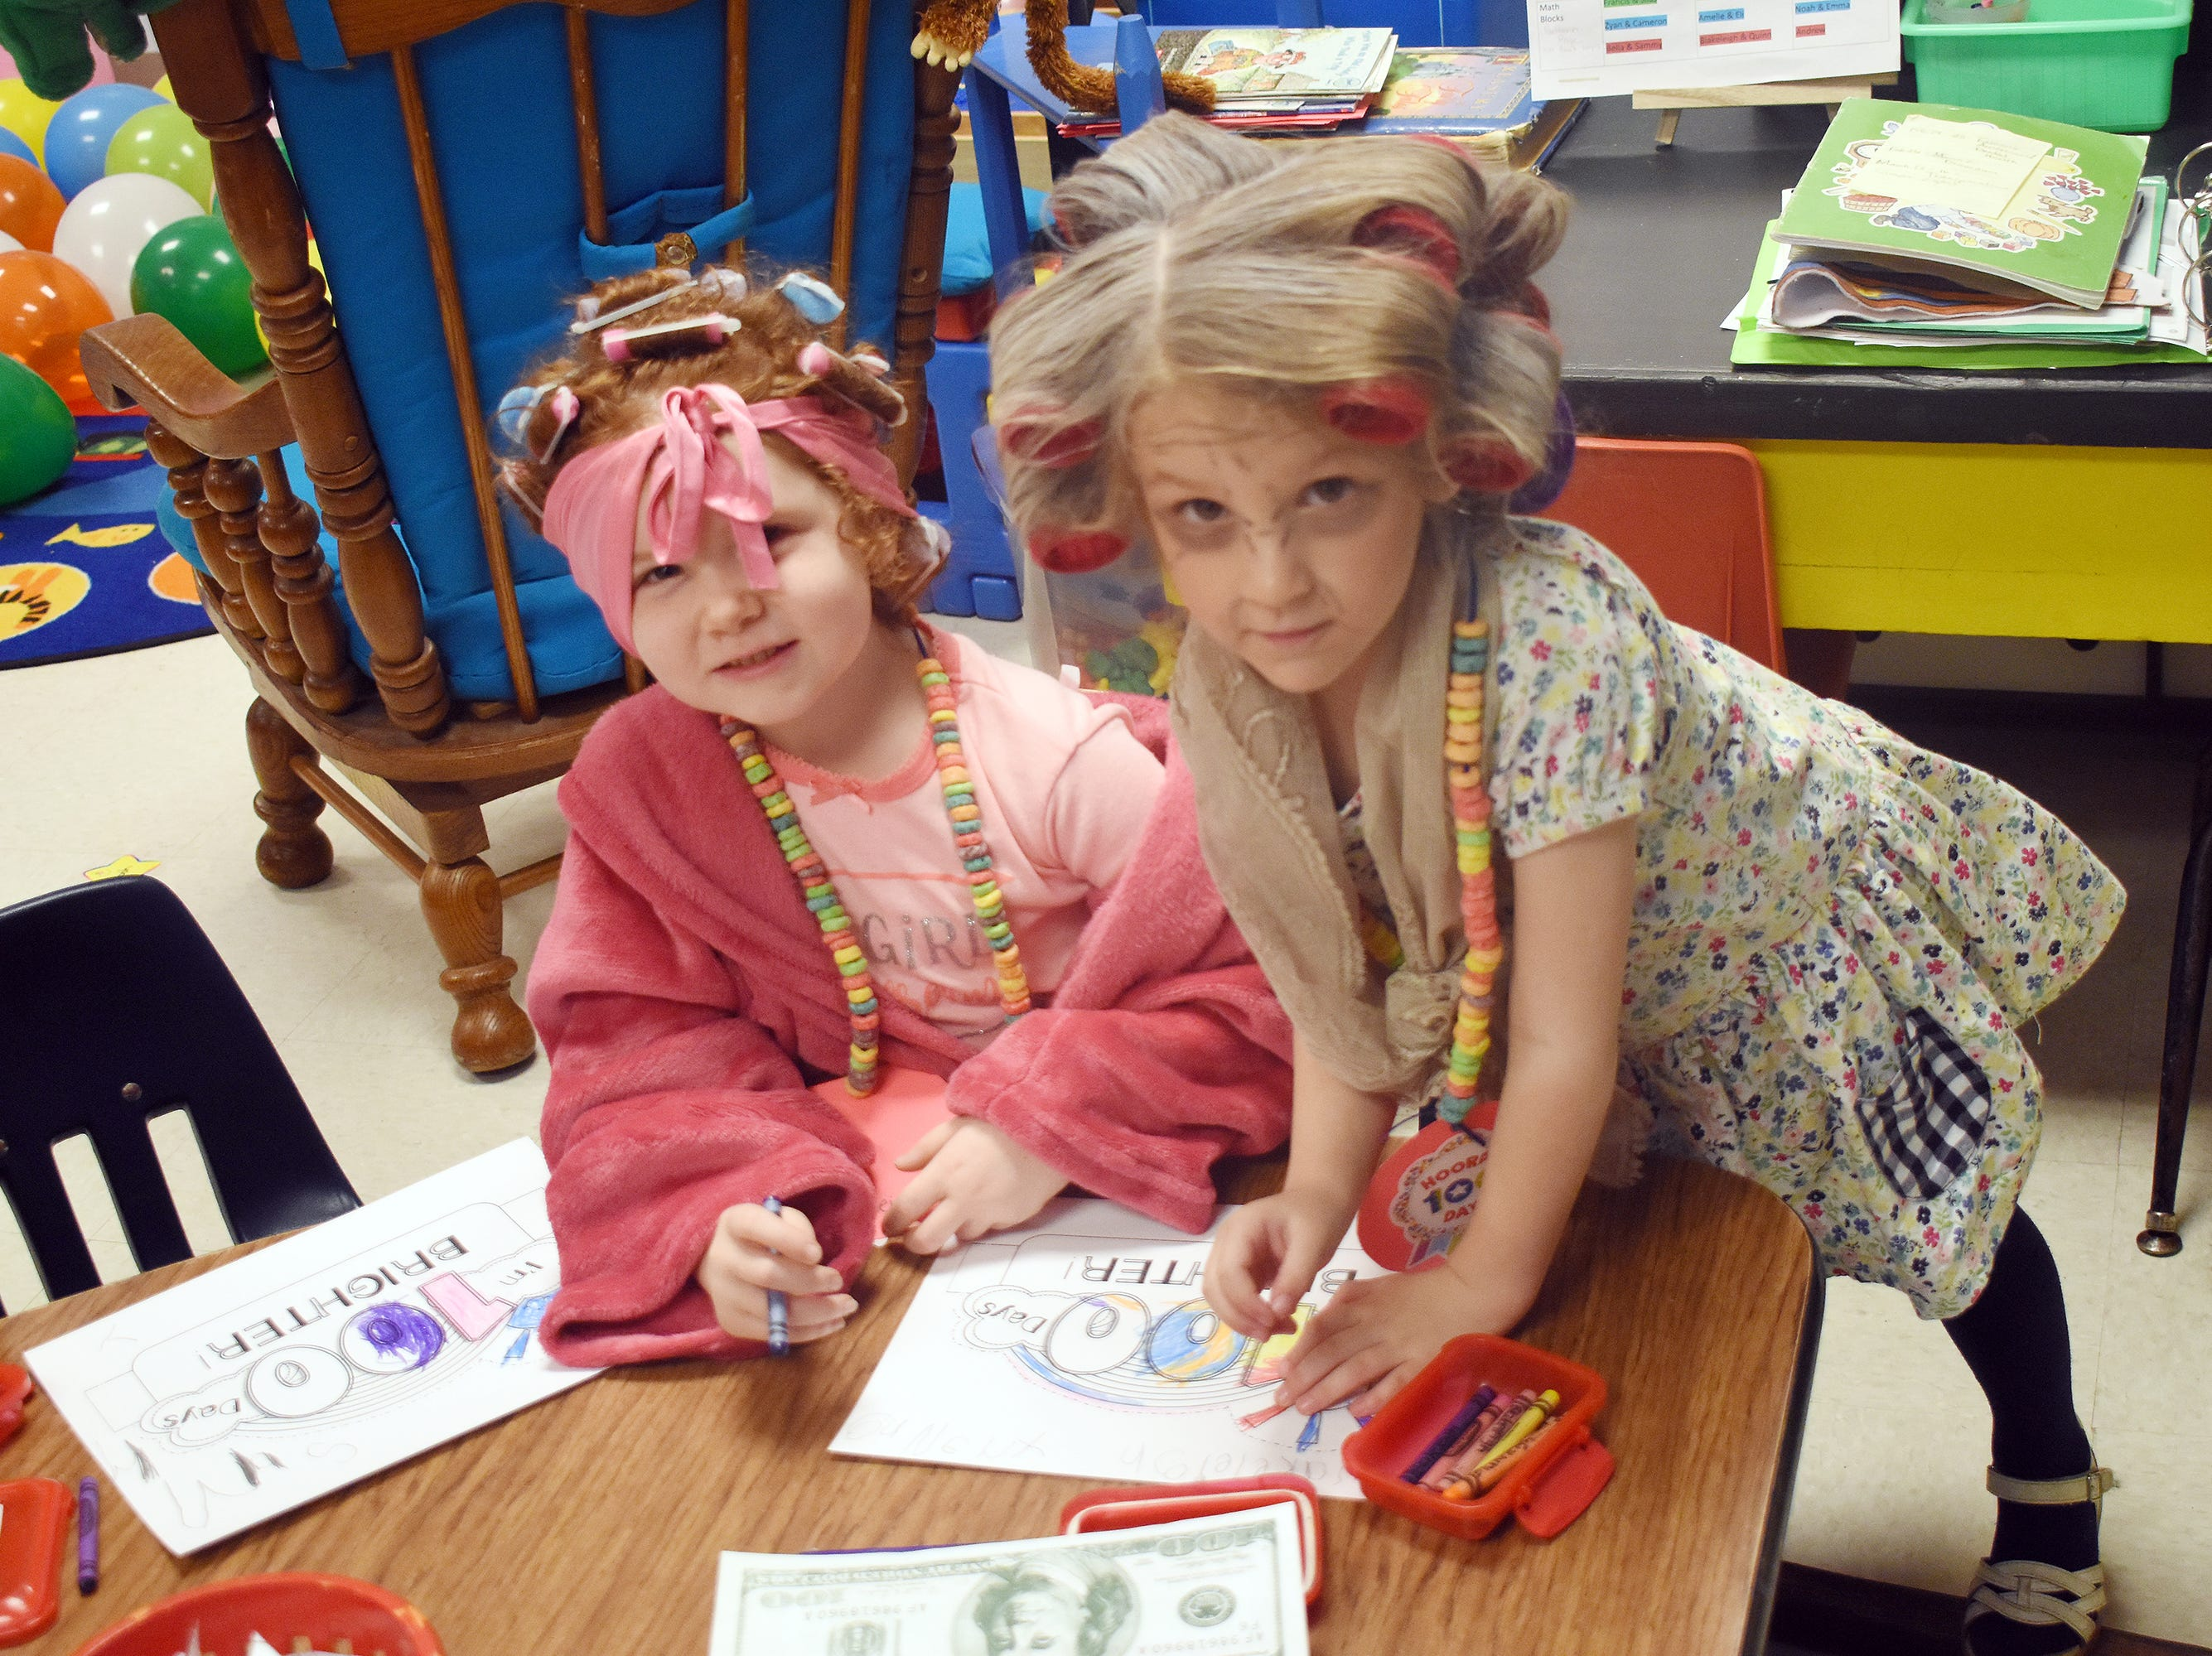 St. Frances Cabrini pre-Kindergarten students Blakeleigh Nugent (left) an Morgan Delaney complete classwork marking 100 days of School as they are dressed as 100-year-olds. On Tuesday, Feb. 5, 2019, St. Frances Cabrini School pre-Kindergarten and Kindergarten students dressed up as 100-year-olds in celebration of 100 days of school.